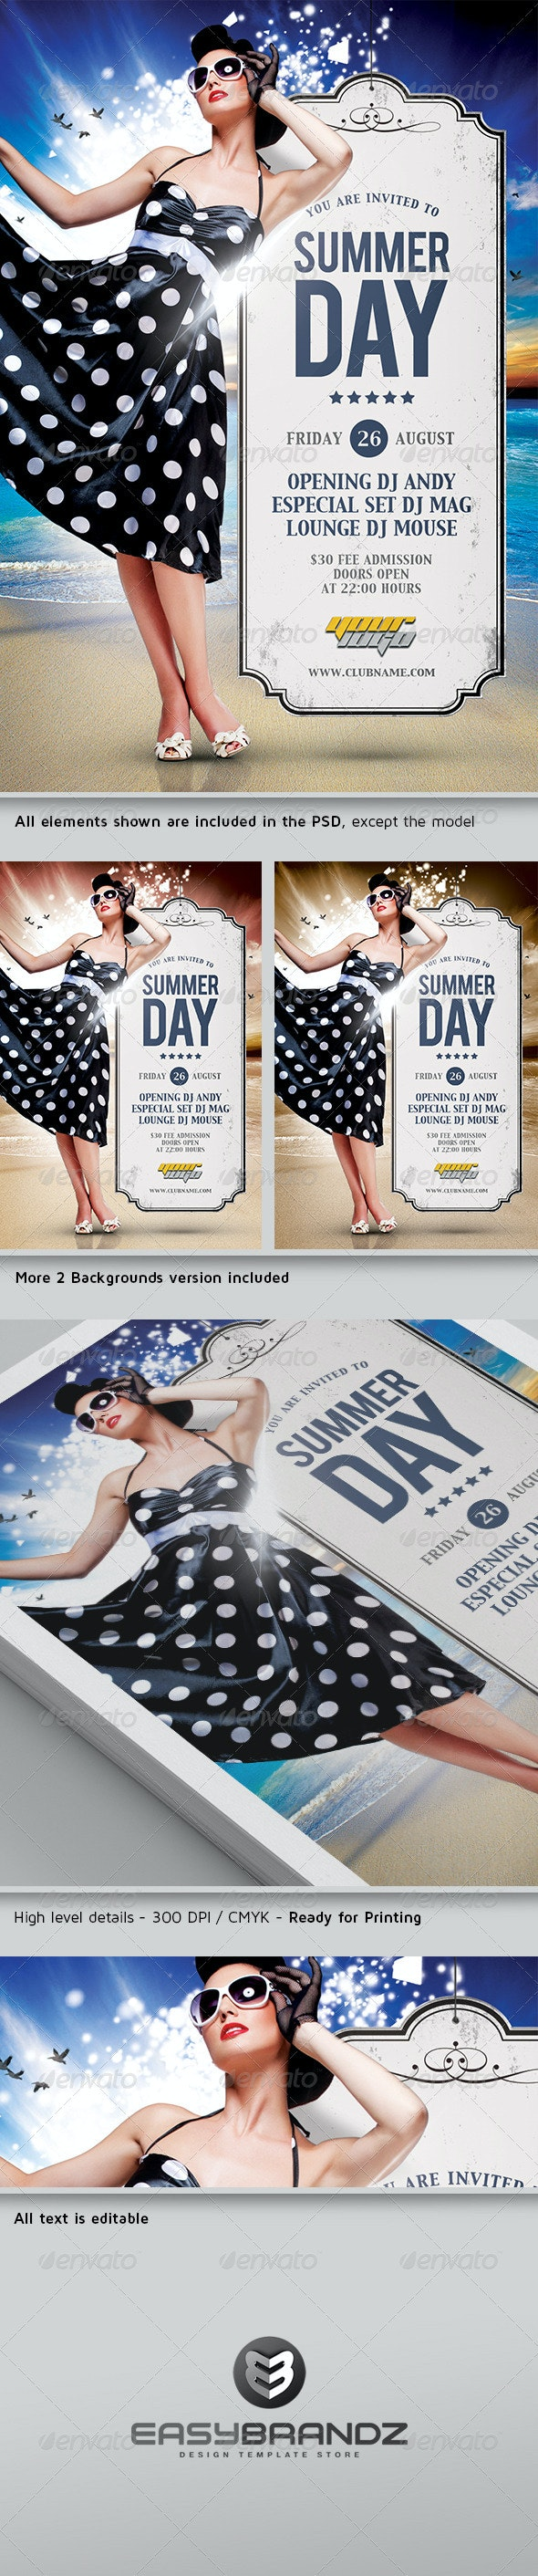 Summer Day Flyer Template - Events Flyers